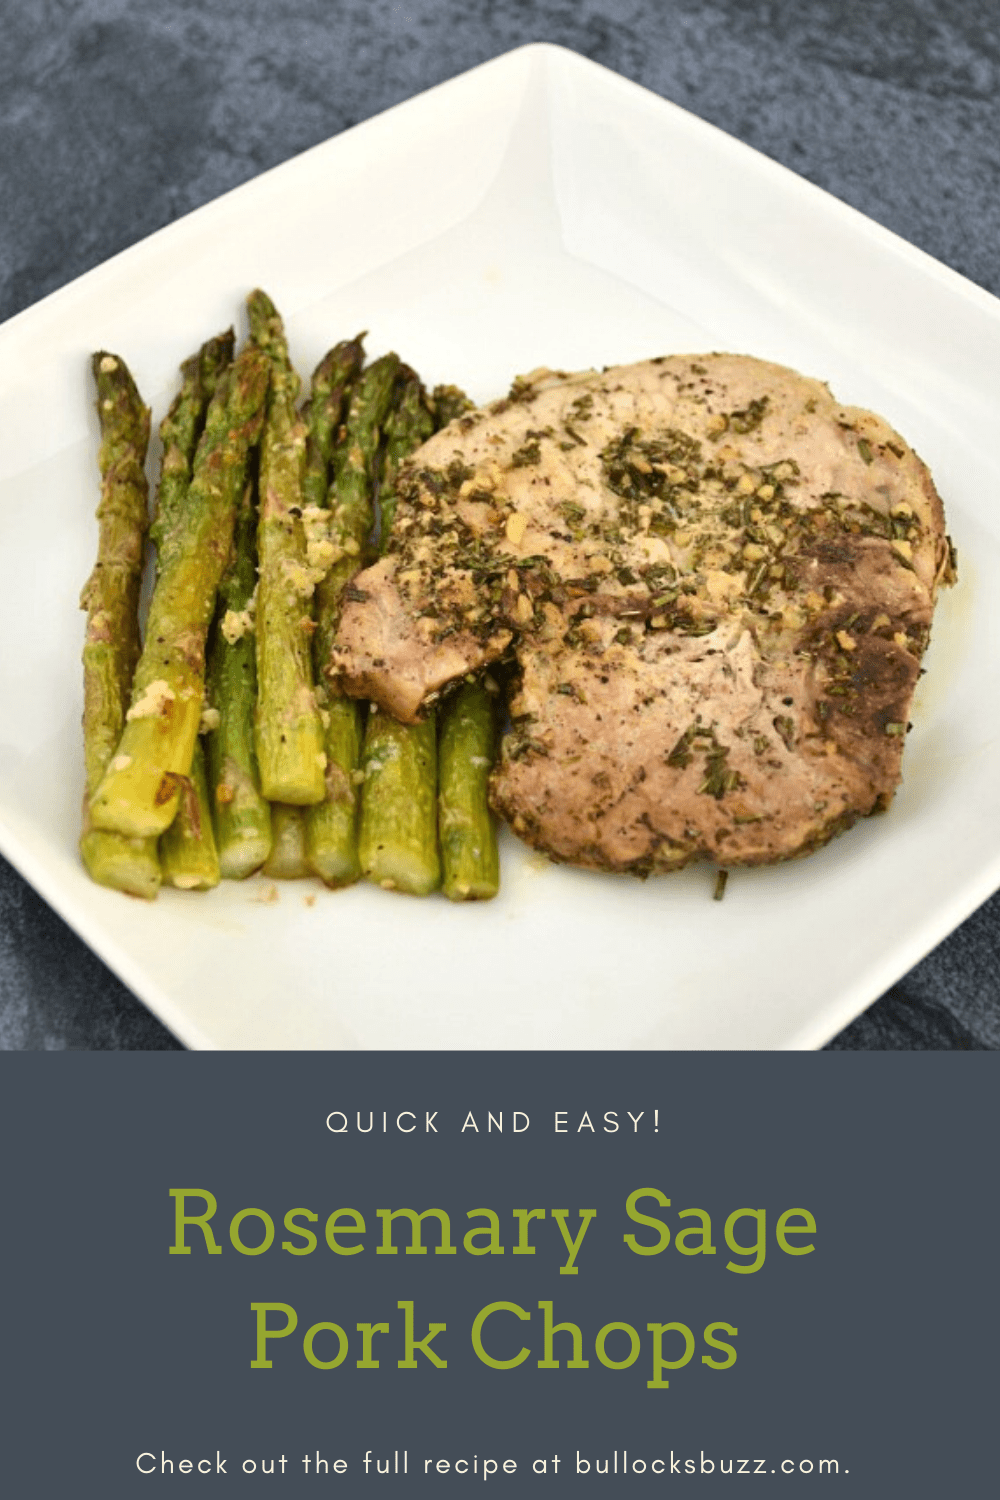 Pork Chops are sauteed in olive oil flavored with fresh rosemary, sage, and garlic resulting in tender and juicy chops that taste as though you spent hours preparing them in this quick and easy Rosemary Sage Pork Chop recipe.